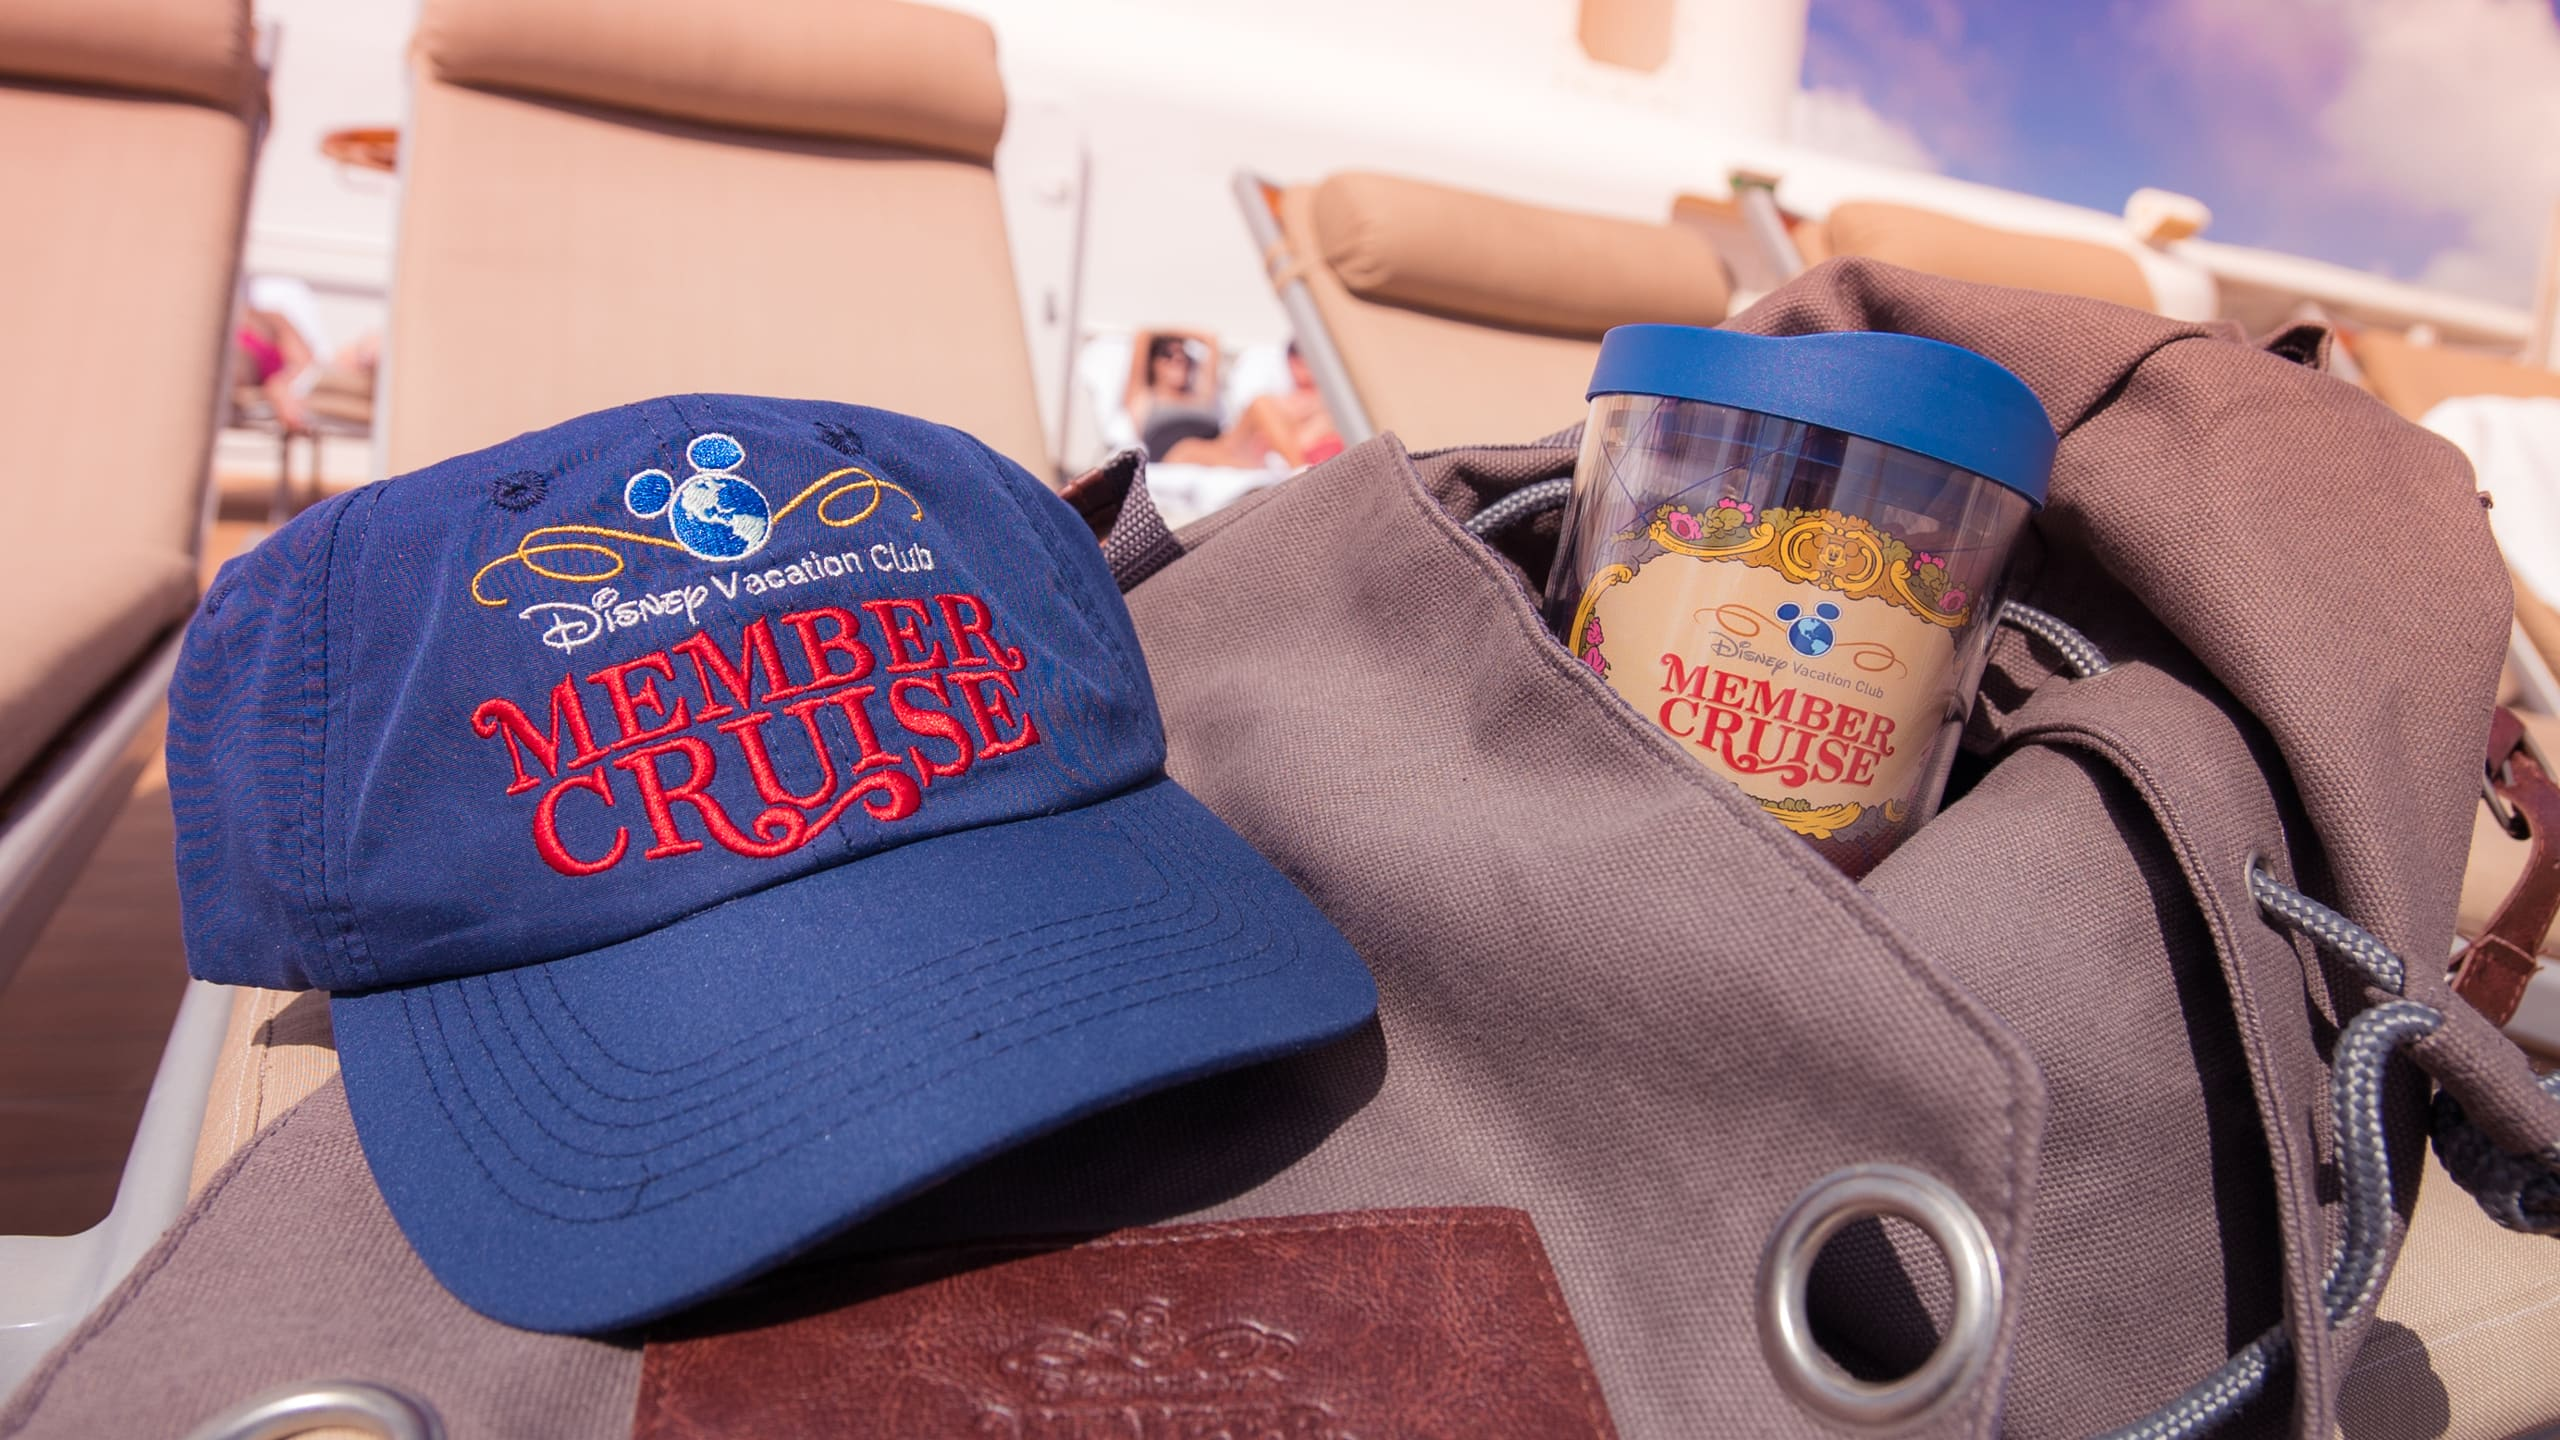 A baseball cap and a tumbler with the Disney Vacation Club Member Cruise logo